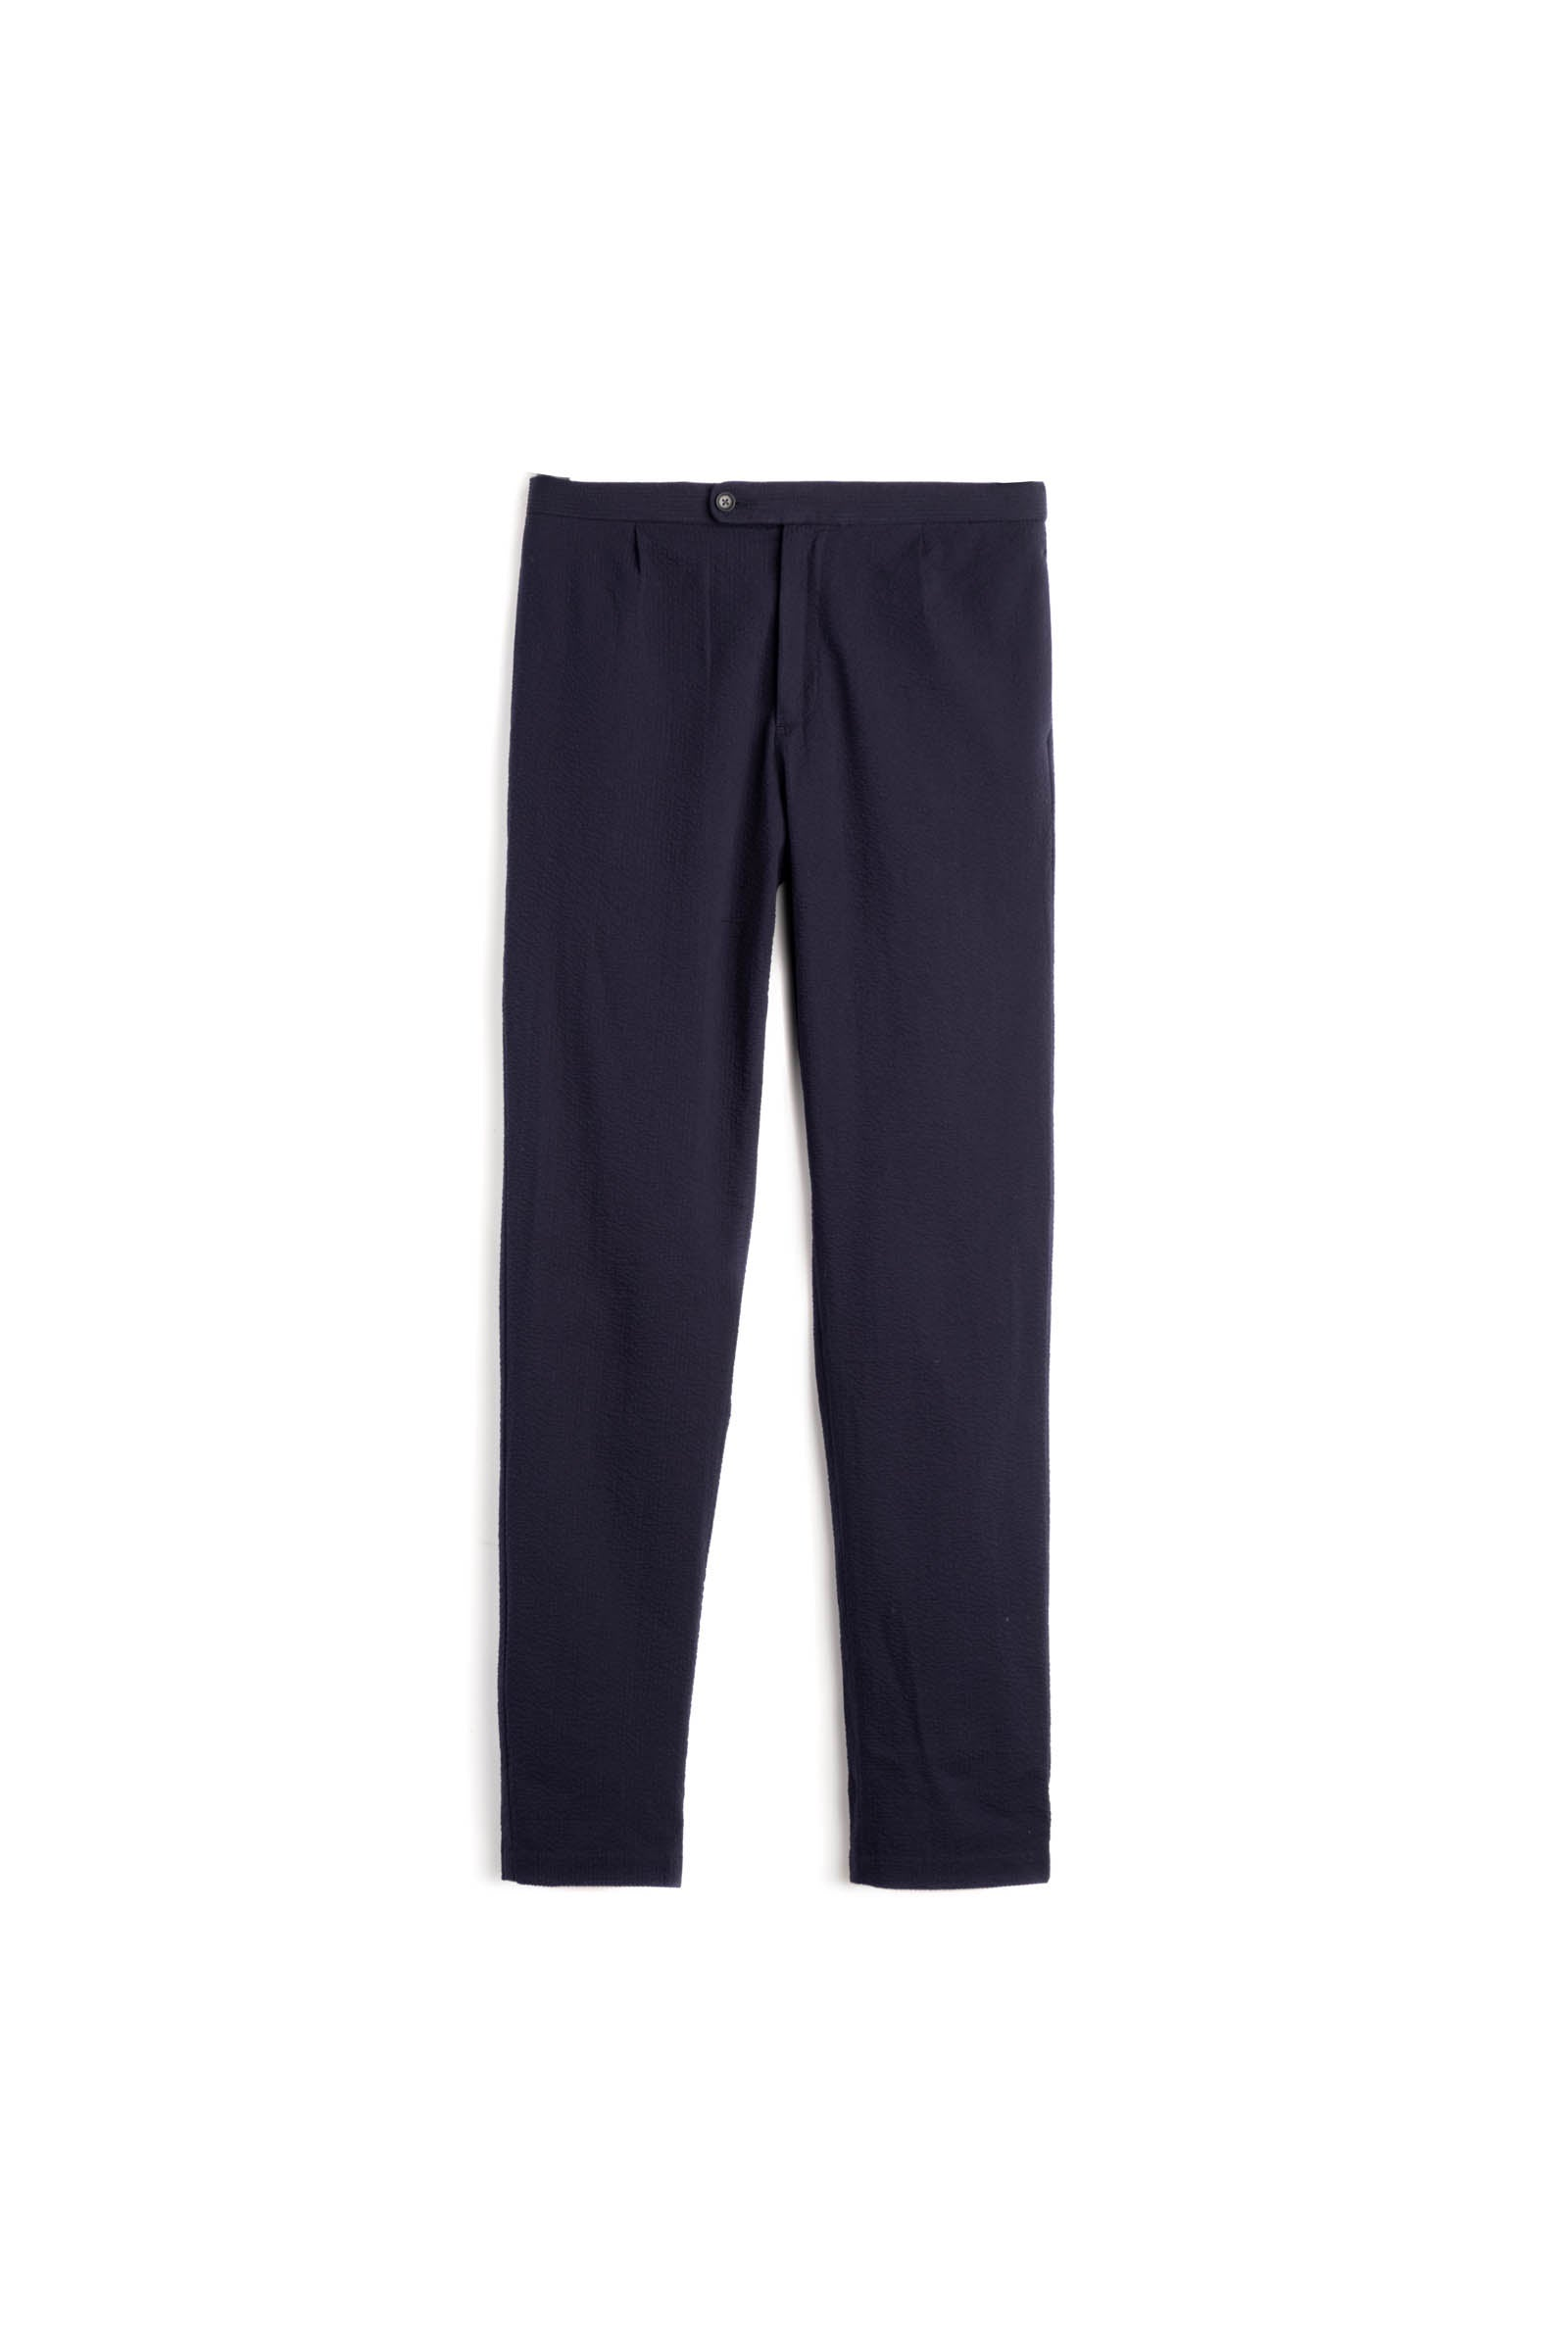 Navy Seersucker Drawstring Trousers